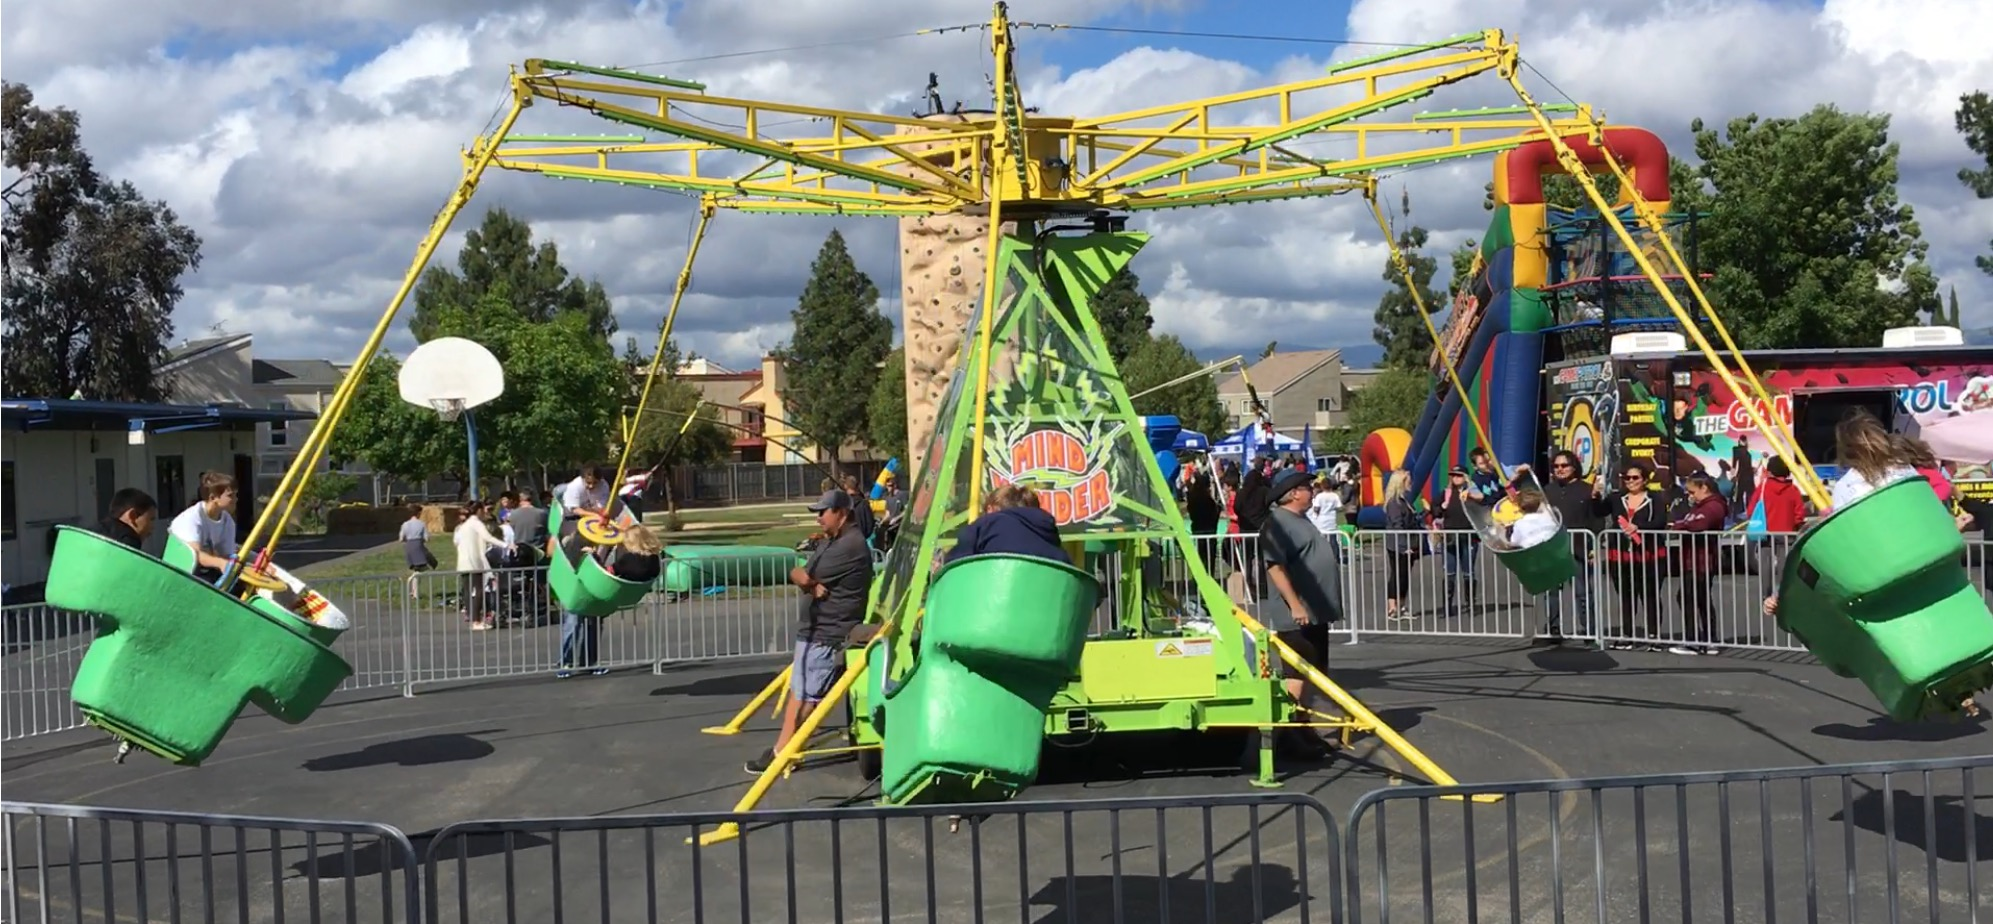 Mindwinder Carnival Spinning Ride - Lets Party